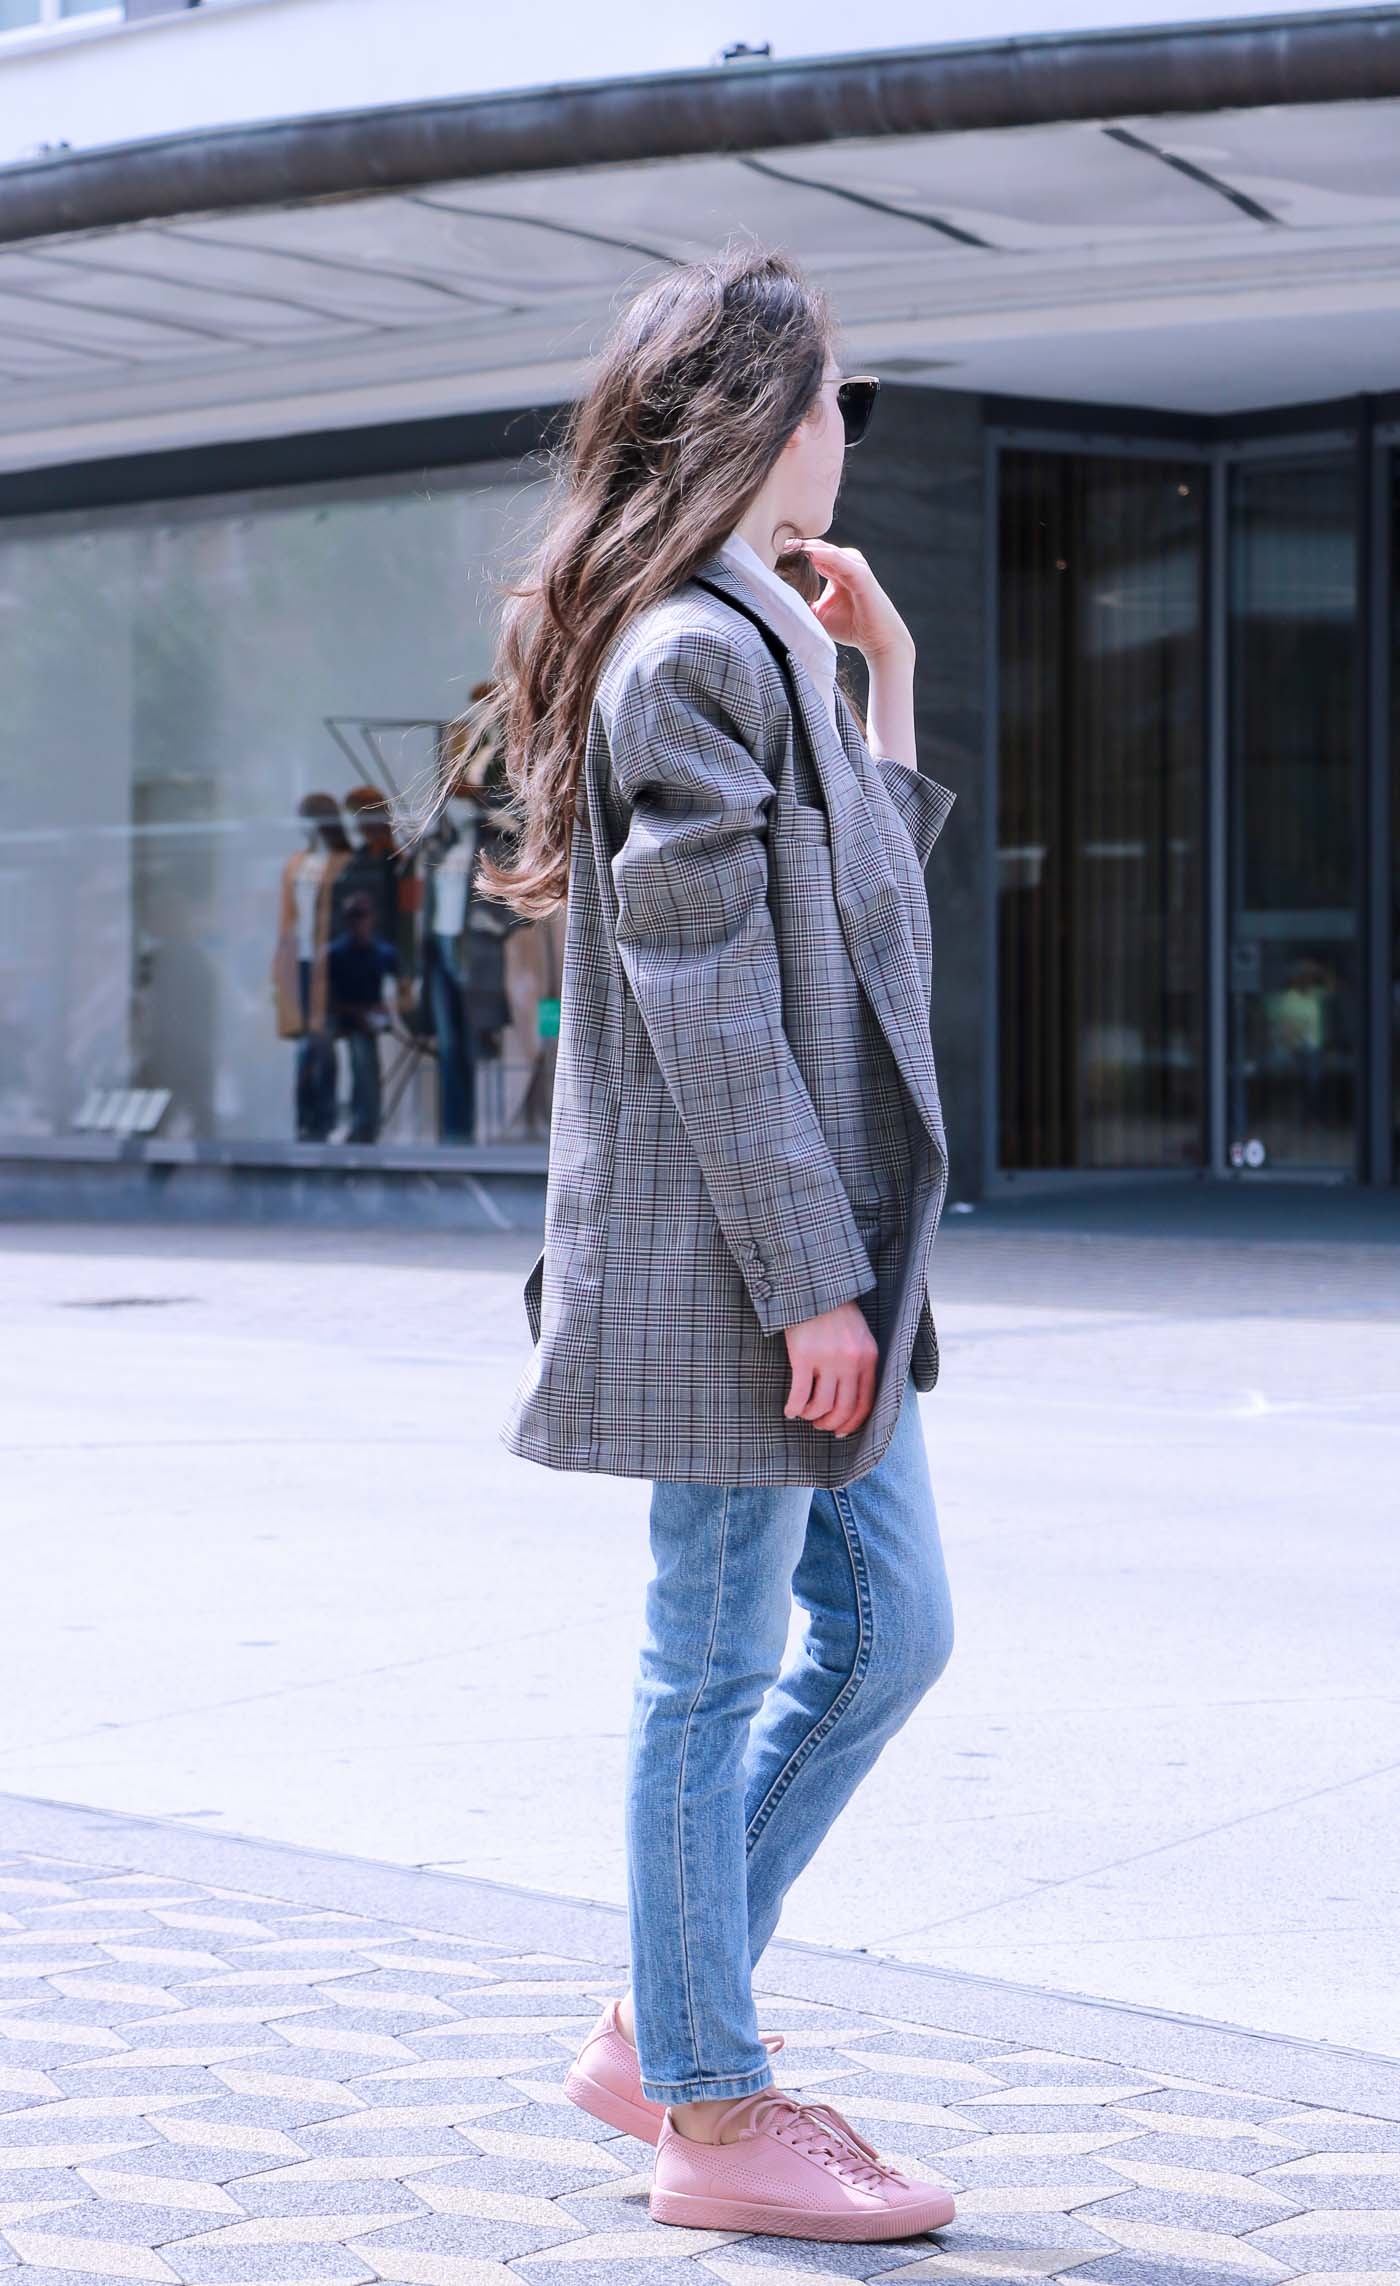 Fashion Blogger Veronika Lipar of Brunette from Wall Street wearing checked oversized boyfriend blazer, mom jeans, and pink sneakers